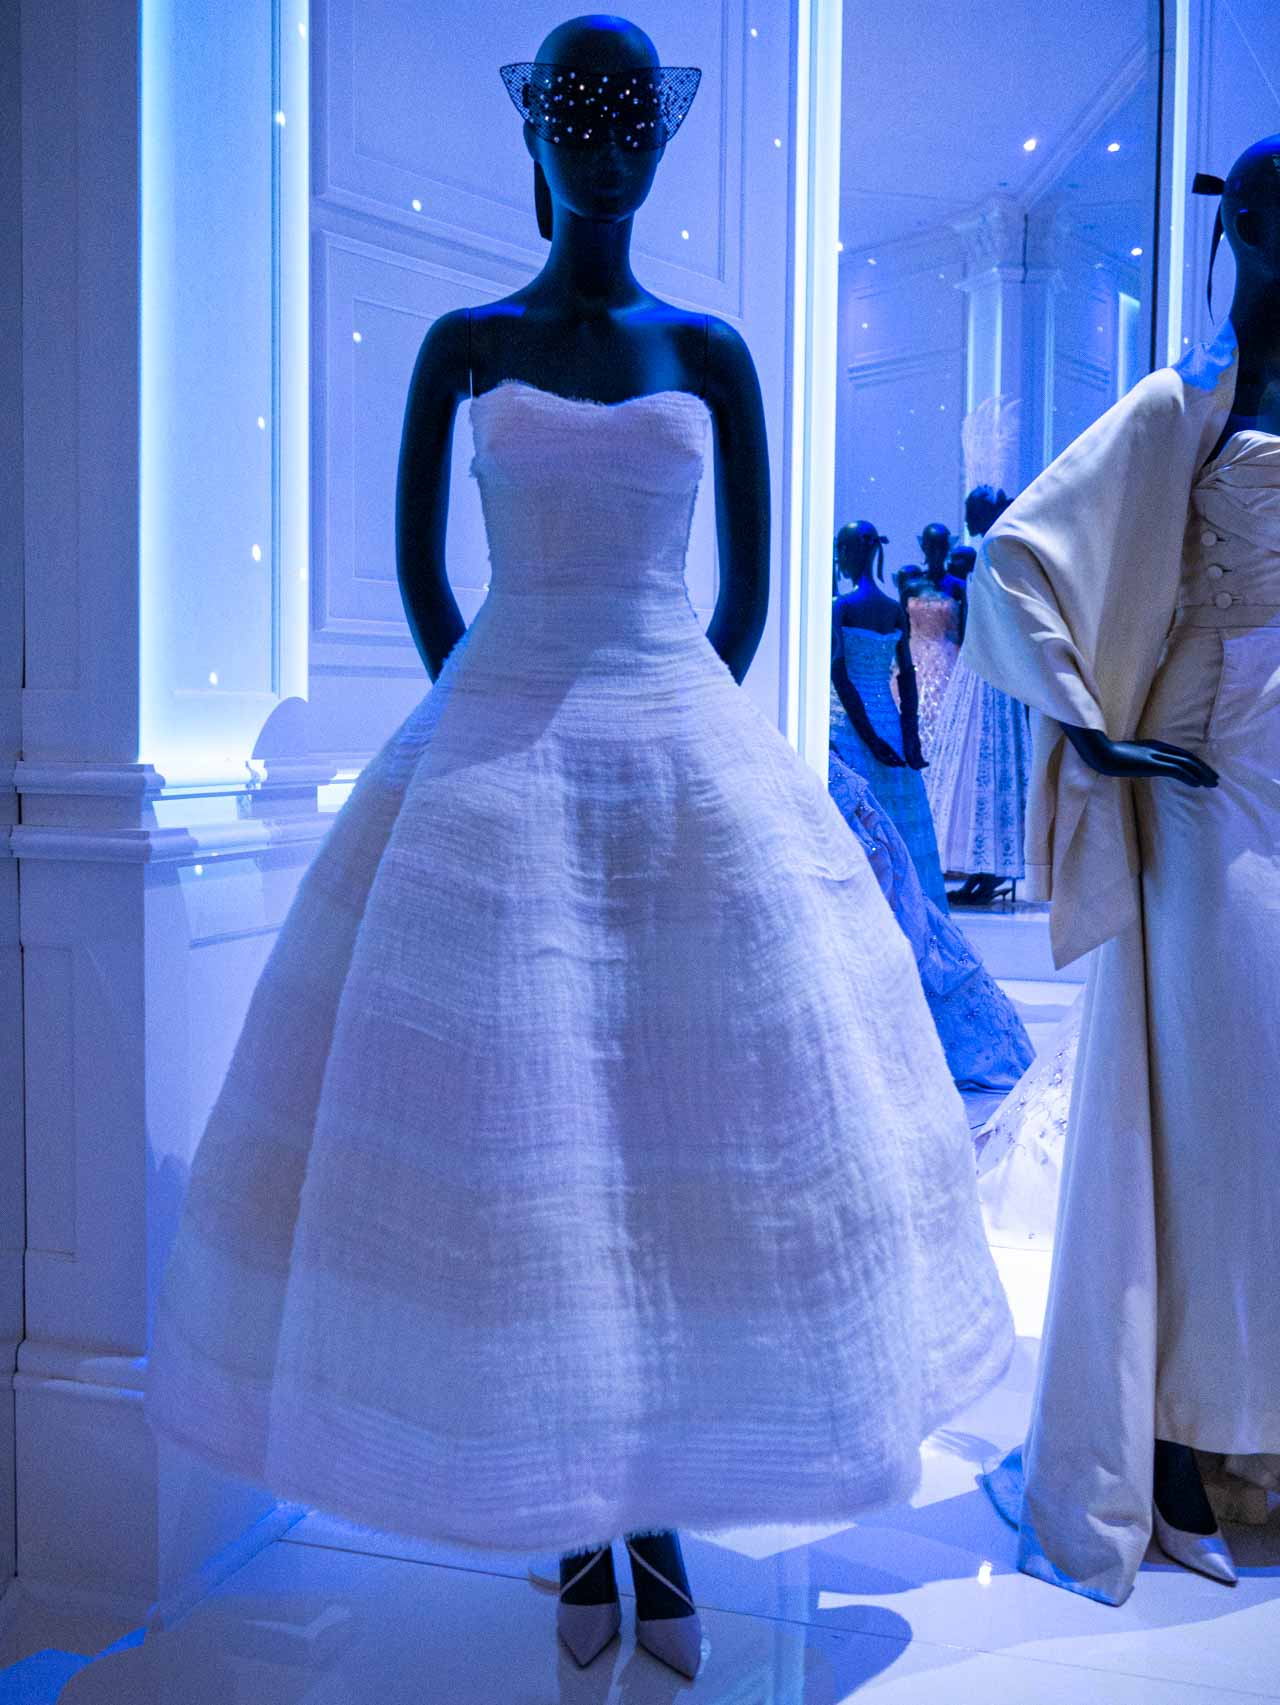 Christian Dior by Raf Simons. Haute Couture, Autumn-Winter 2012. Taken at the V&A exhibition © The Cutting Class, 2019.